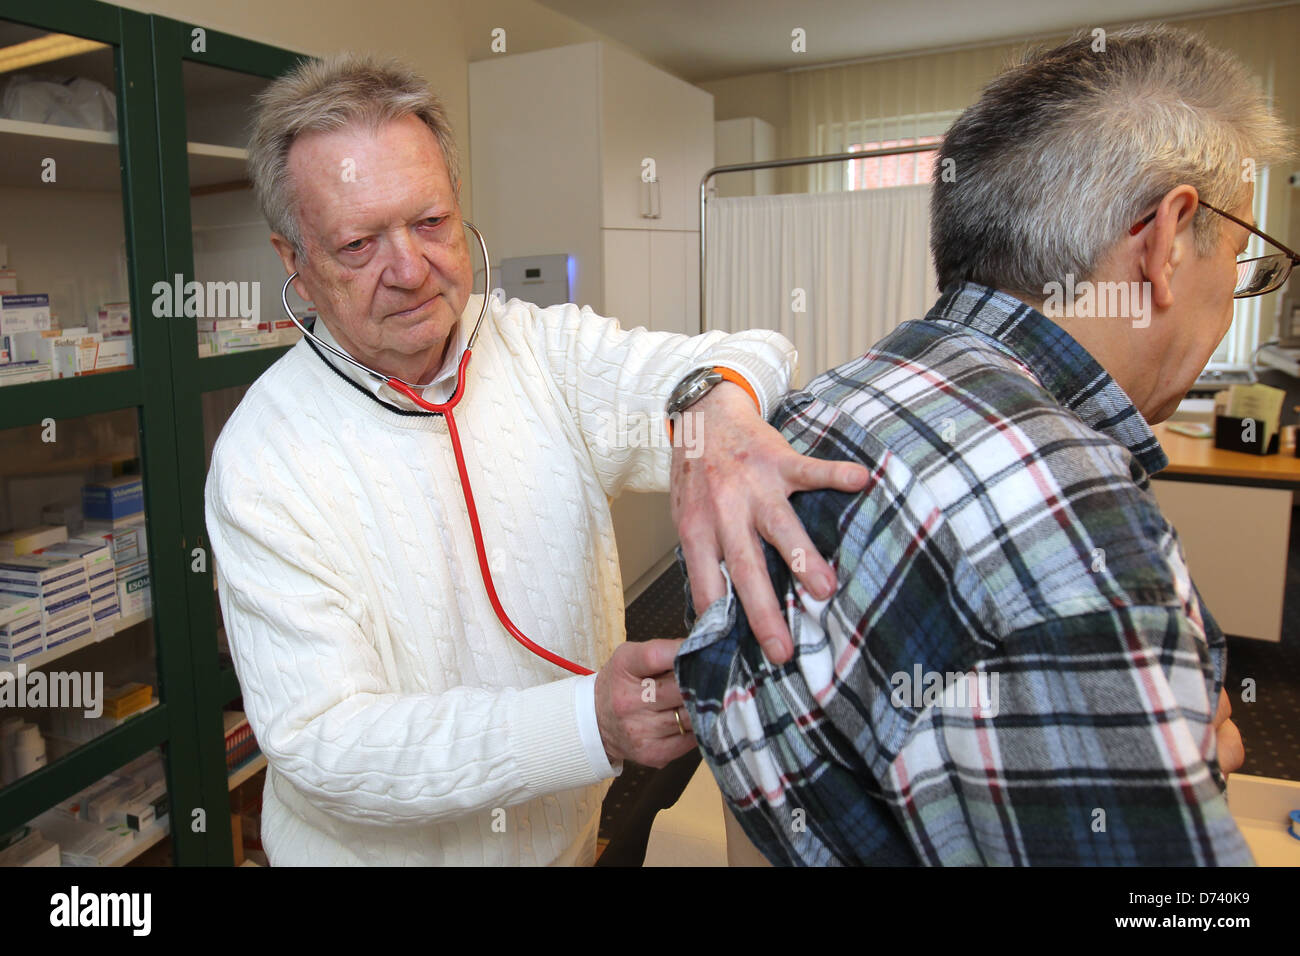 Bad Segeberg, Germany, Uwe thinker examines a patient in his practice without limits - Stock Image